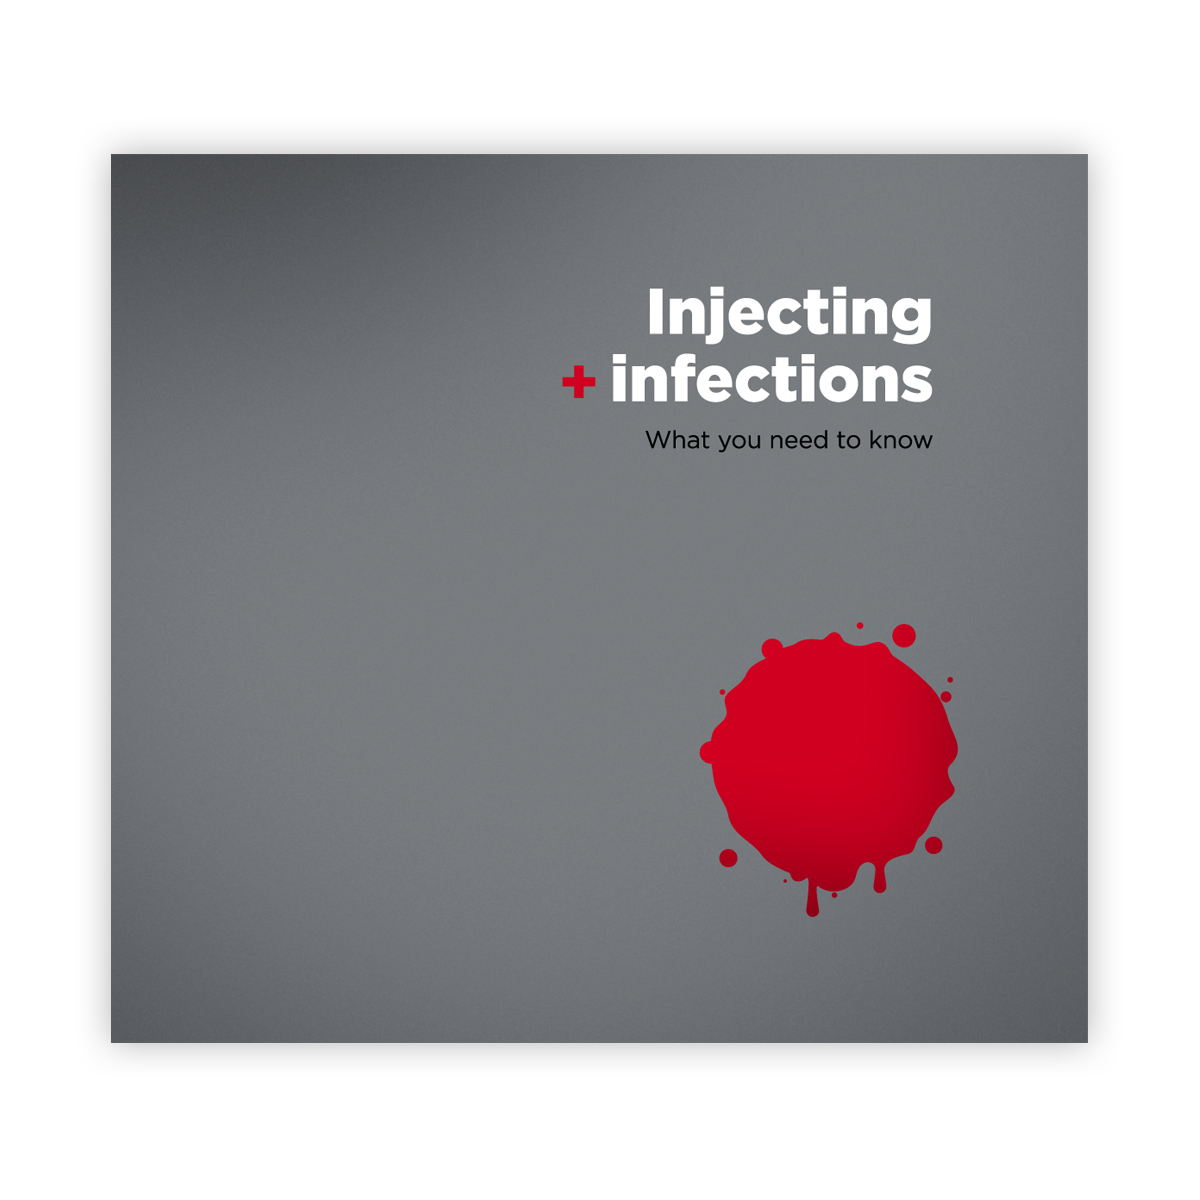 Injecting and infections: what you need to know